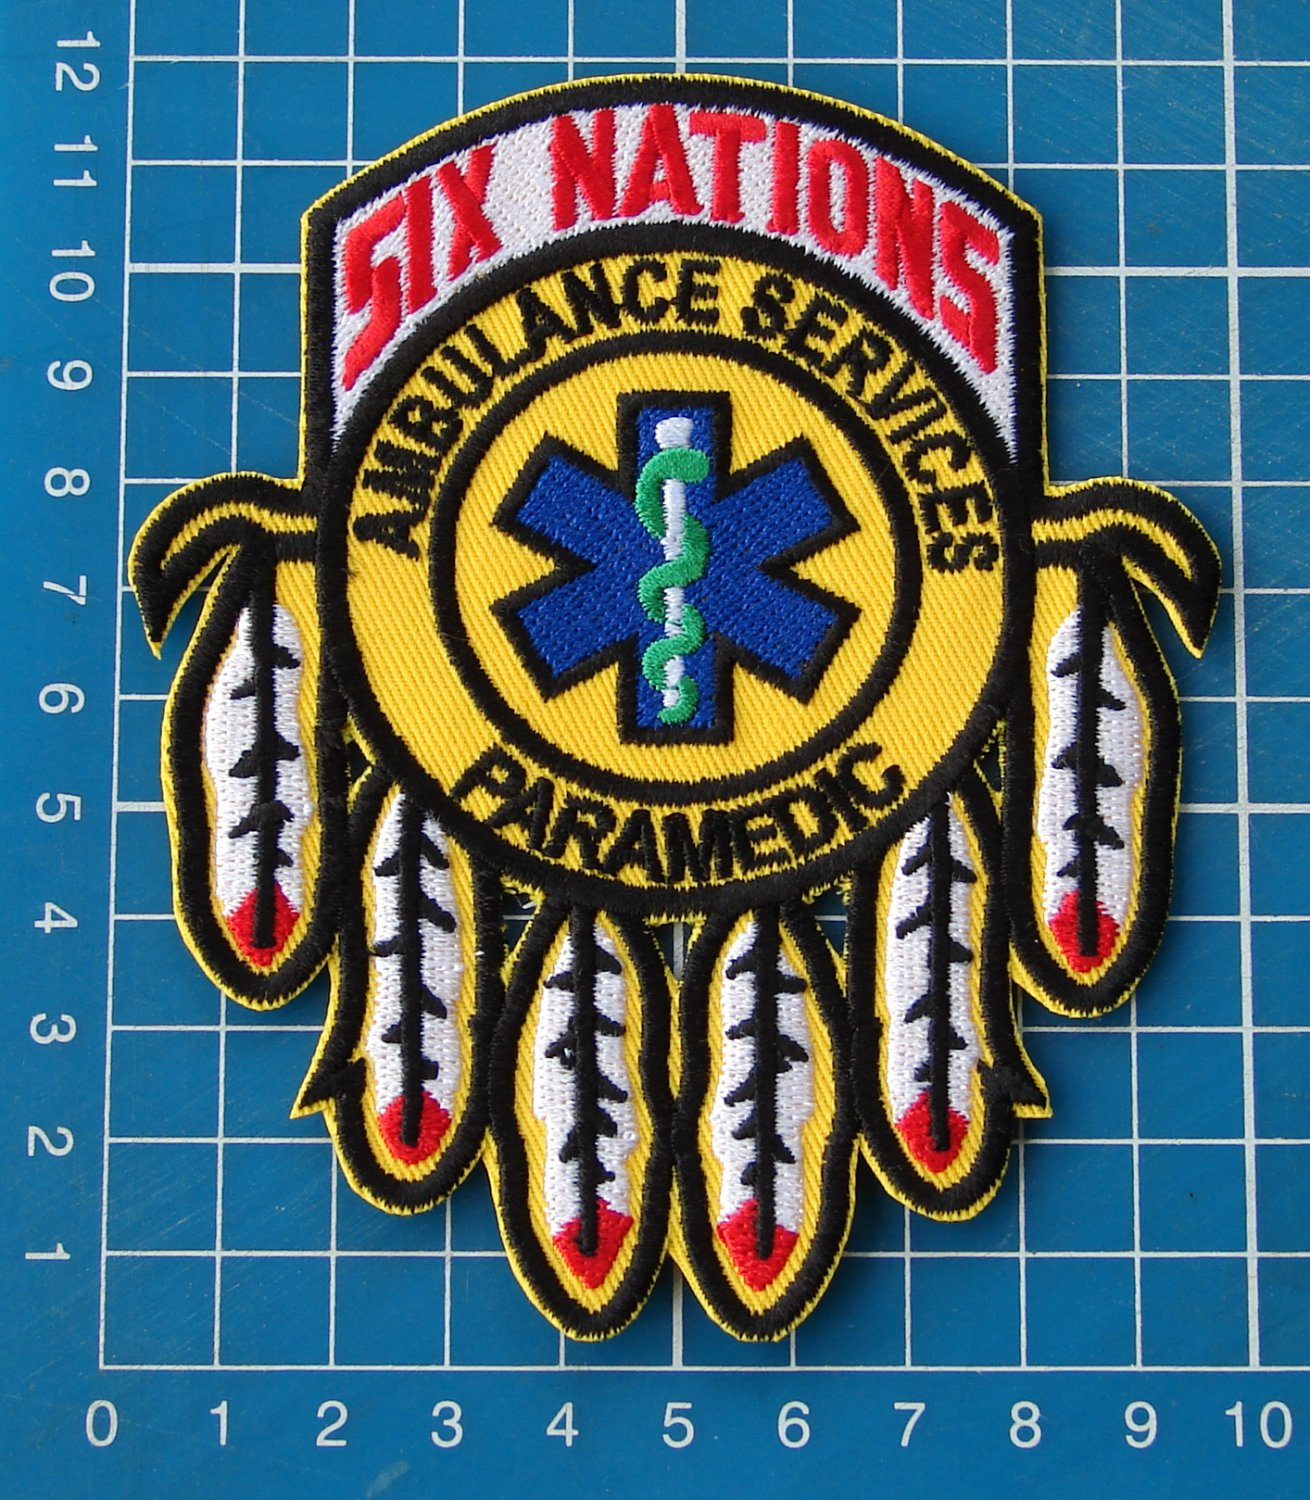 Six Nations Medical care AMR sew on embroidery patches